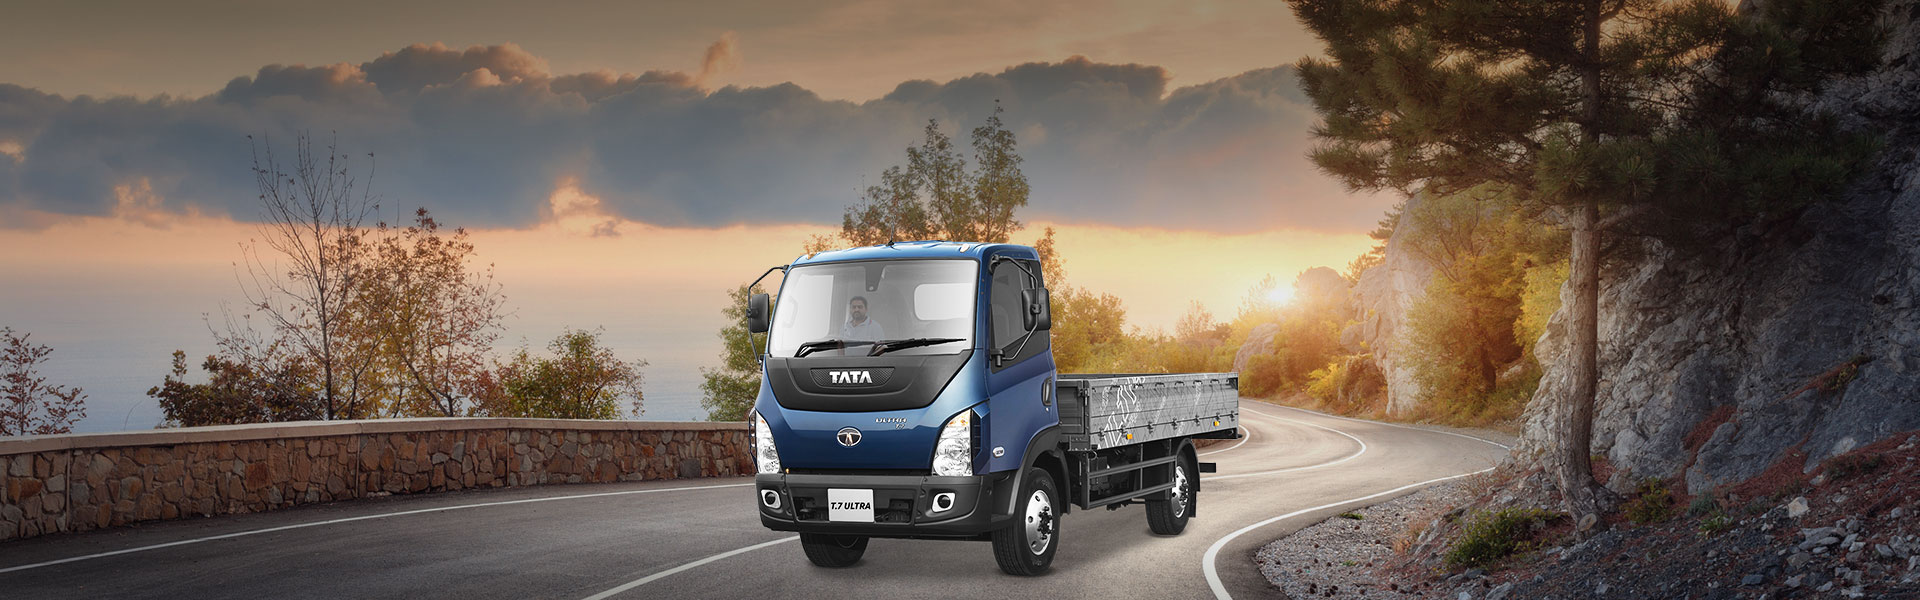 TATA Light Trucks - Contact Us